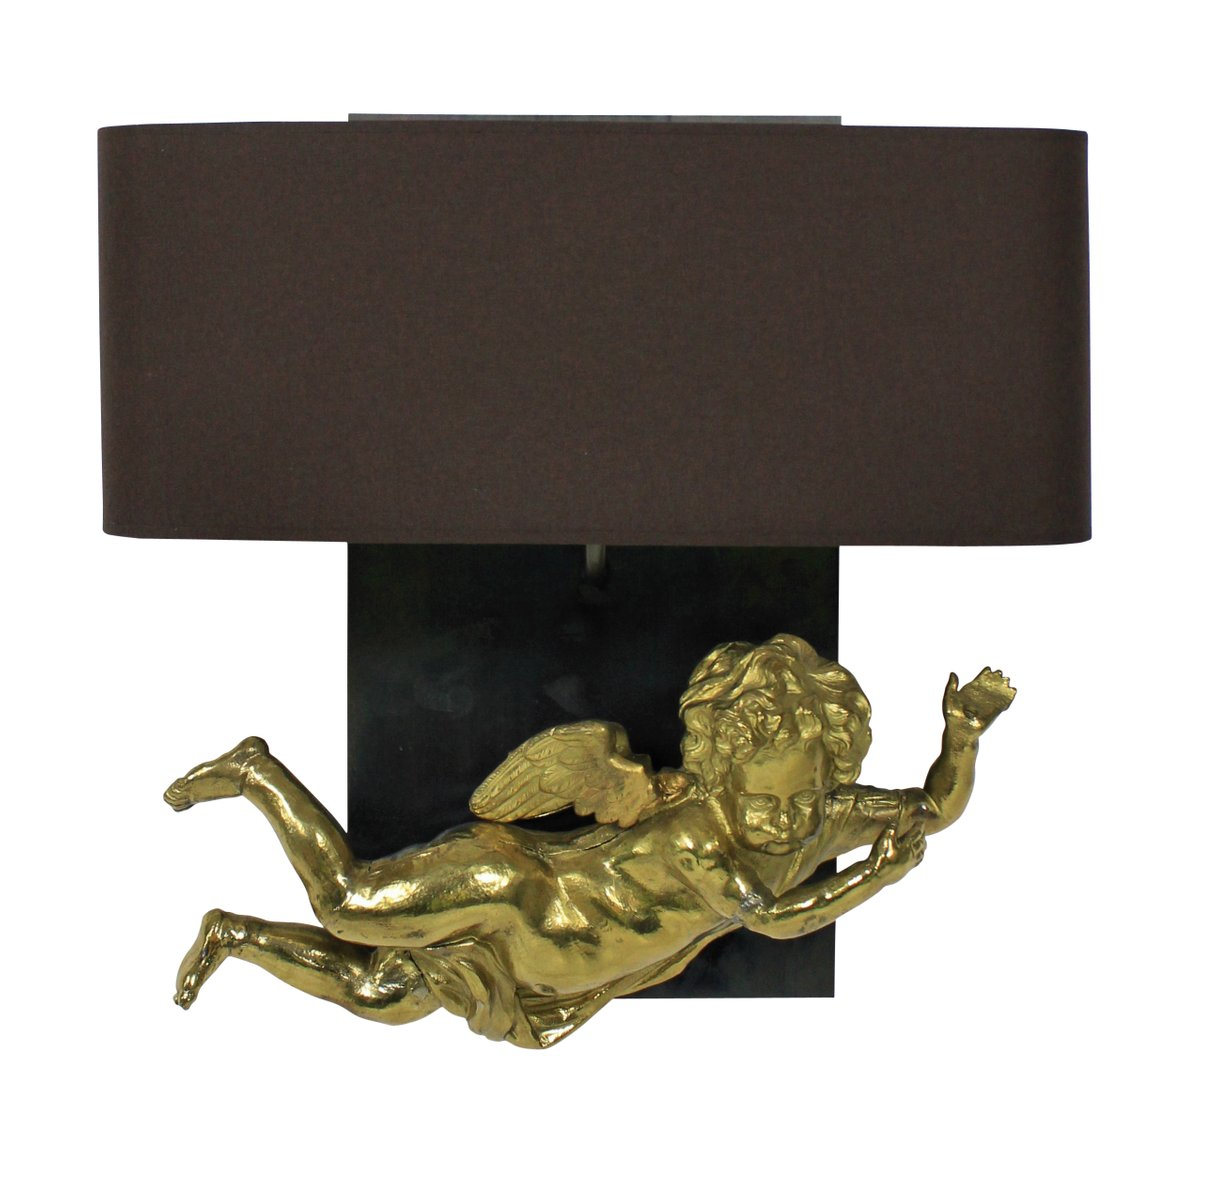 Wall Sconces Set Of 2 : Antique French Cherub Wall Sconces, Set of 2 for sale at Pamono